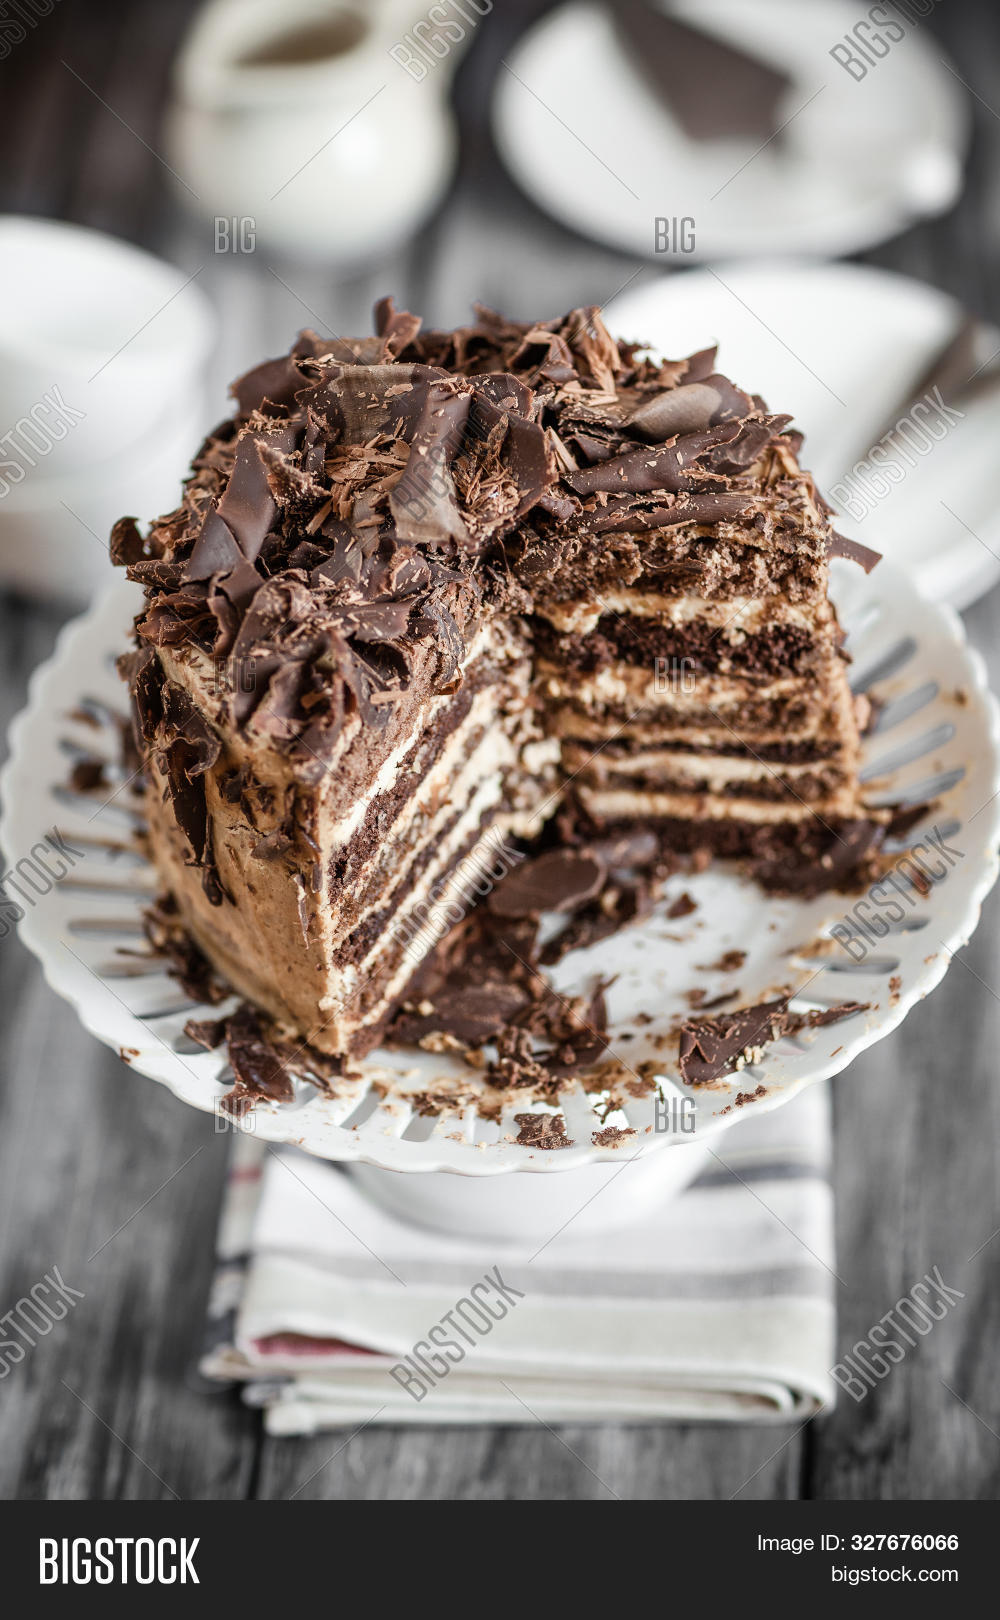 Creating a delicious multi-layered cake at home